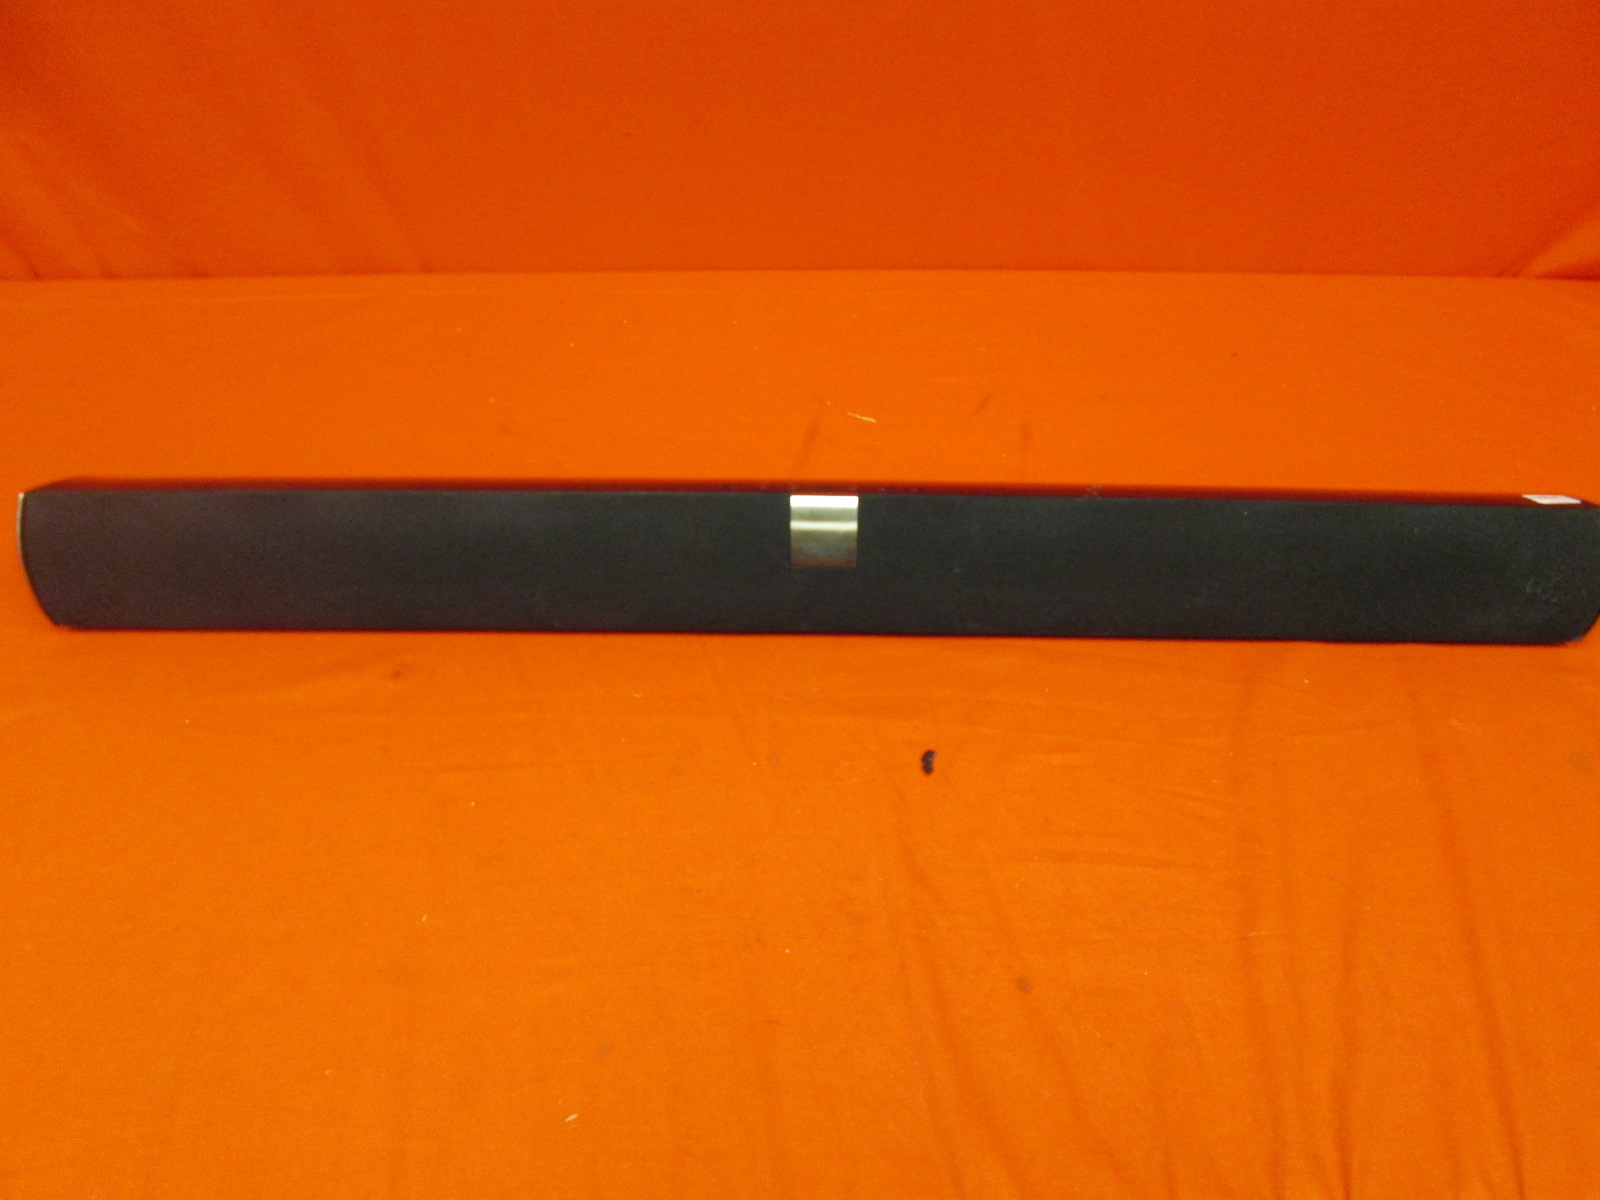 Vizio VSB200 Universal HD Sound Bar